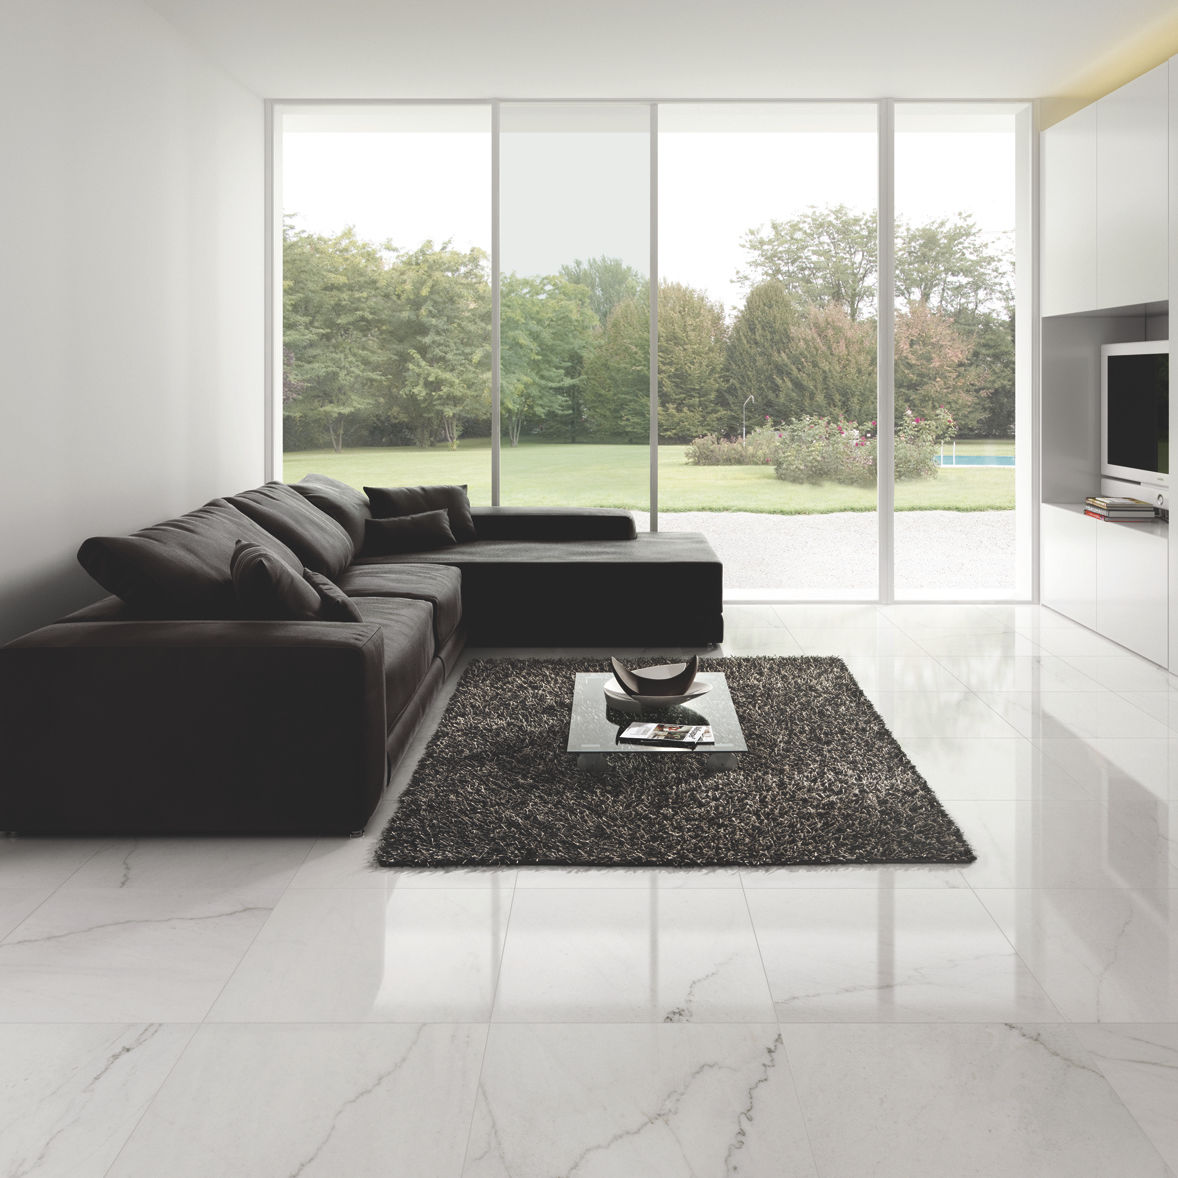 Indoor Tile For Floors Porcelain Stoneware Polished Dreaming Crystal White